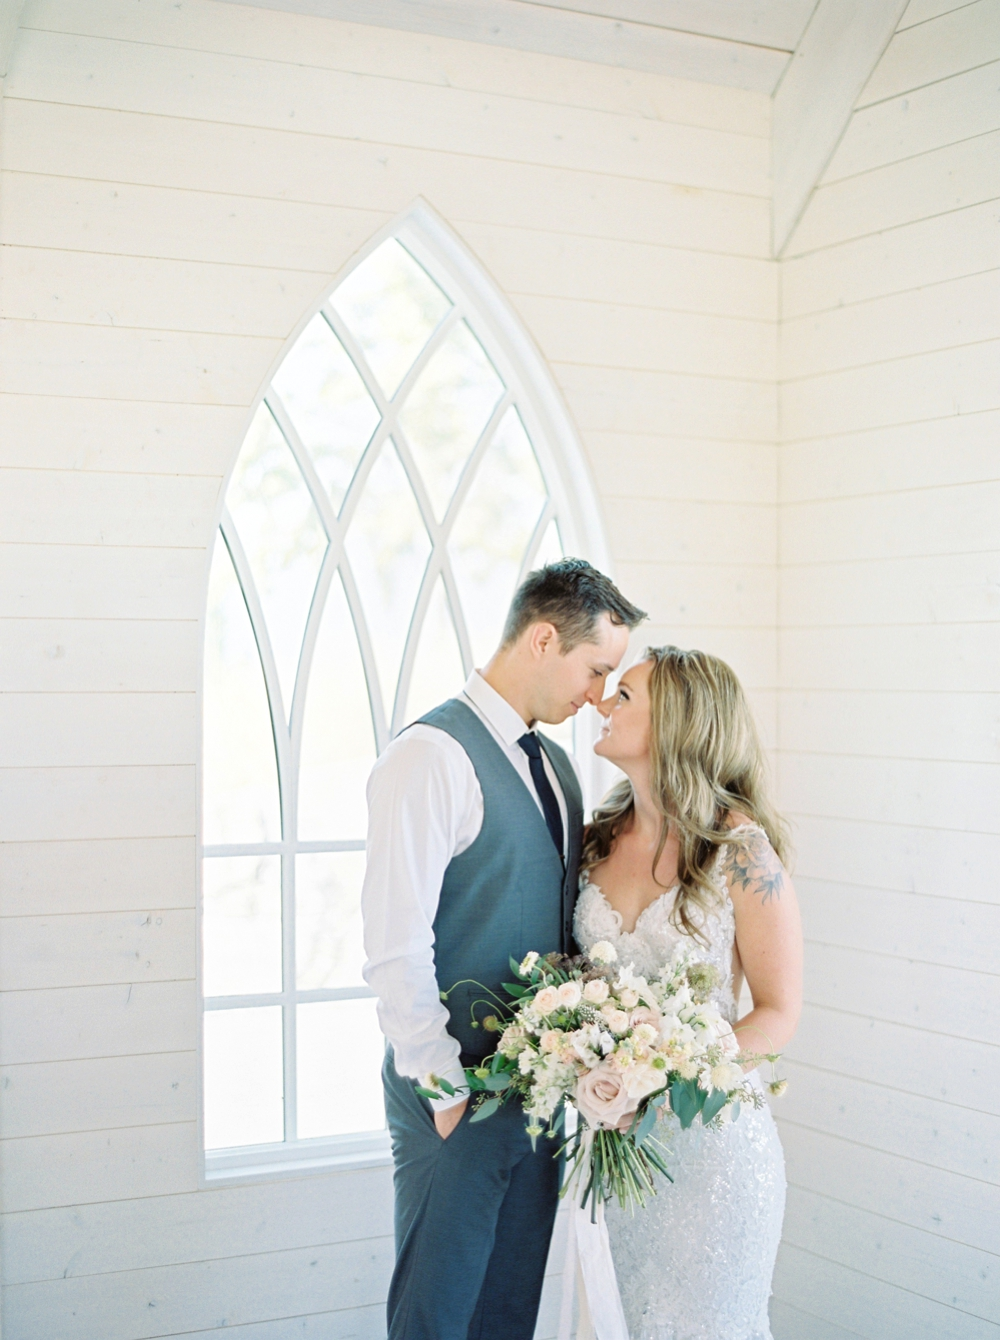 Sanctuary Gardens Kelowna Wedding | Elopement Photography | Bride and groom Portraits | Justine Milton Fine Art Film Wedding Photographers